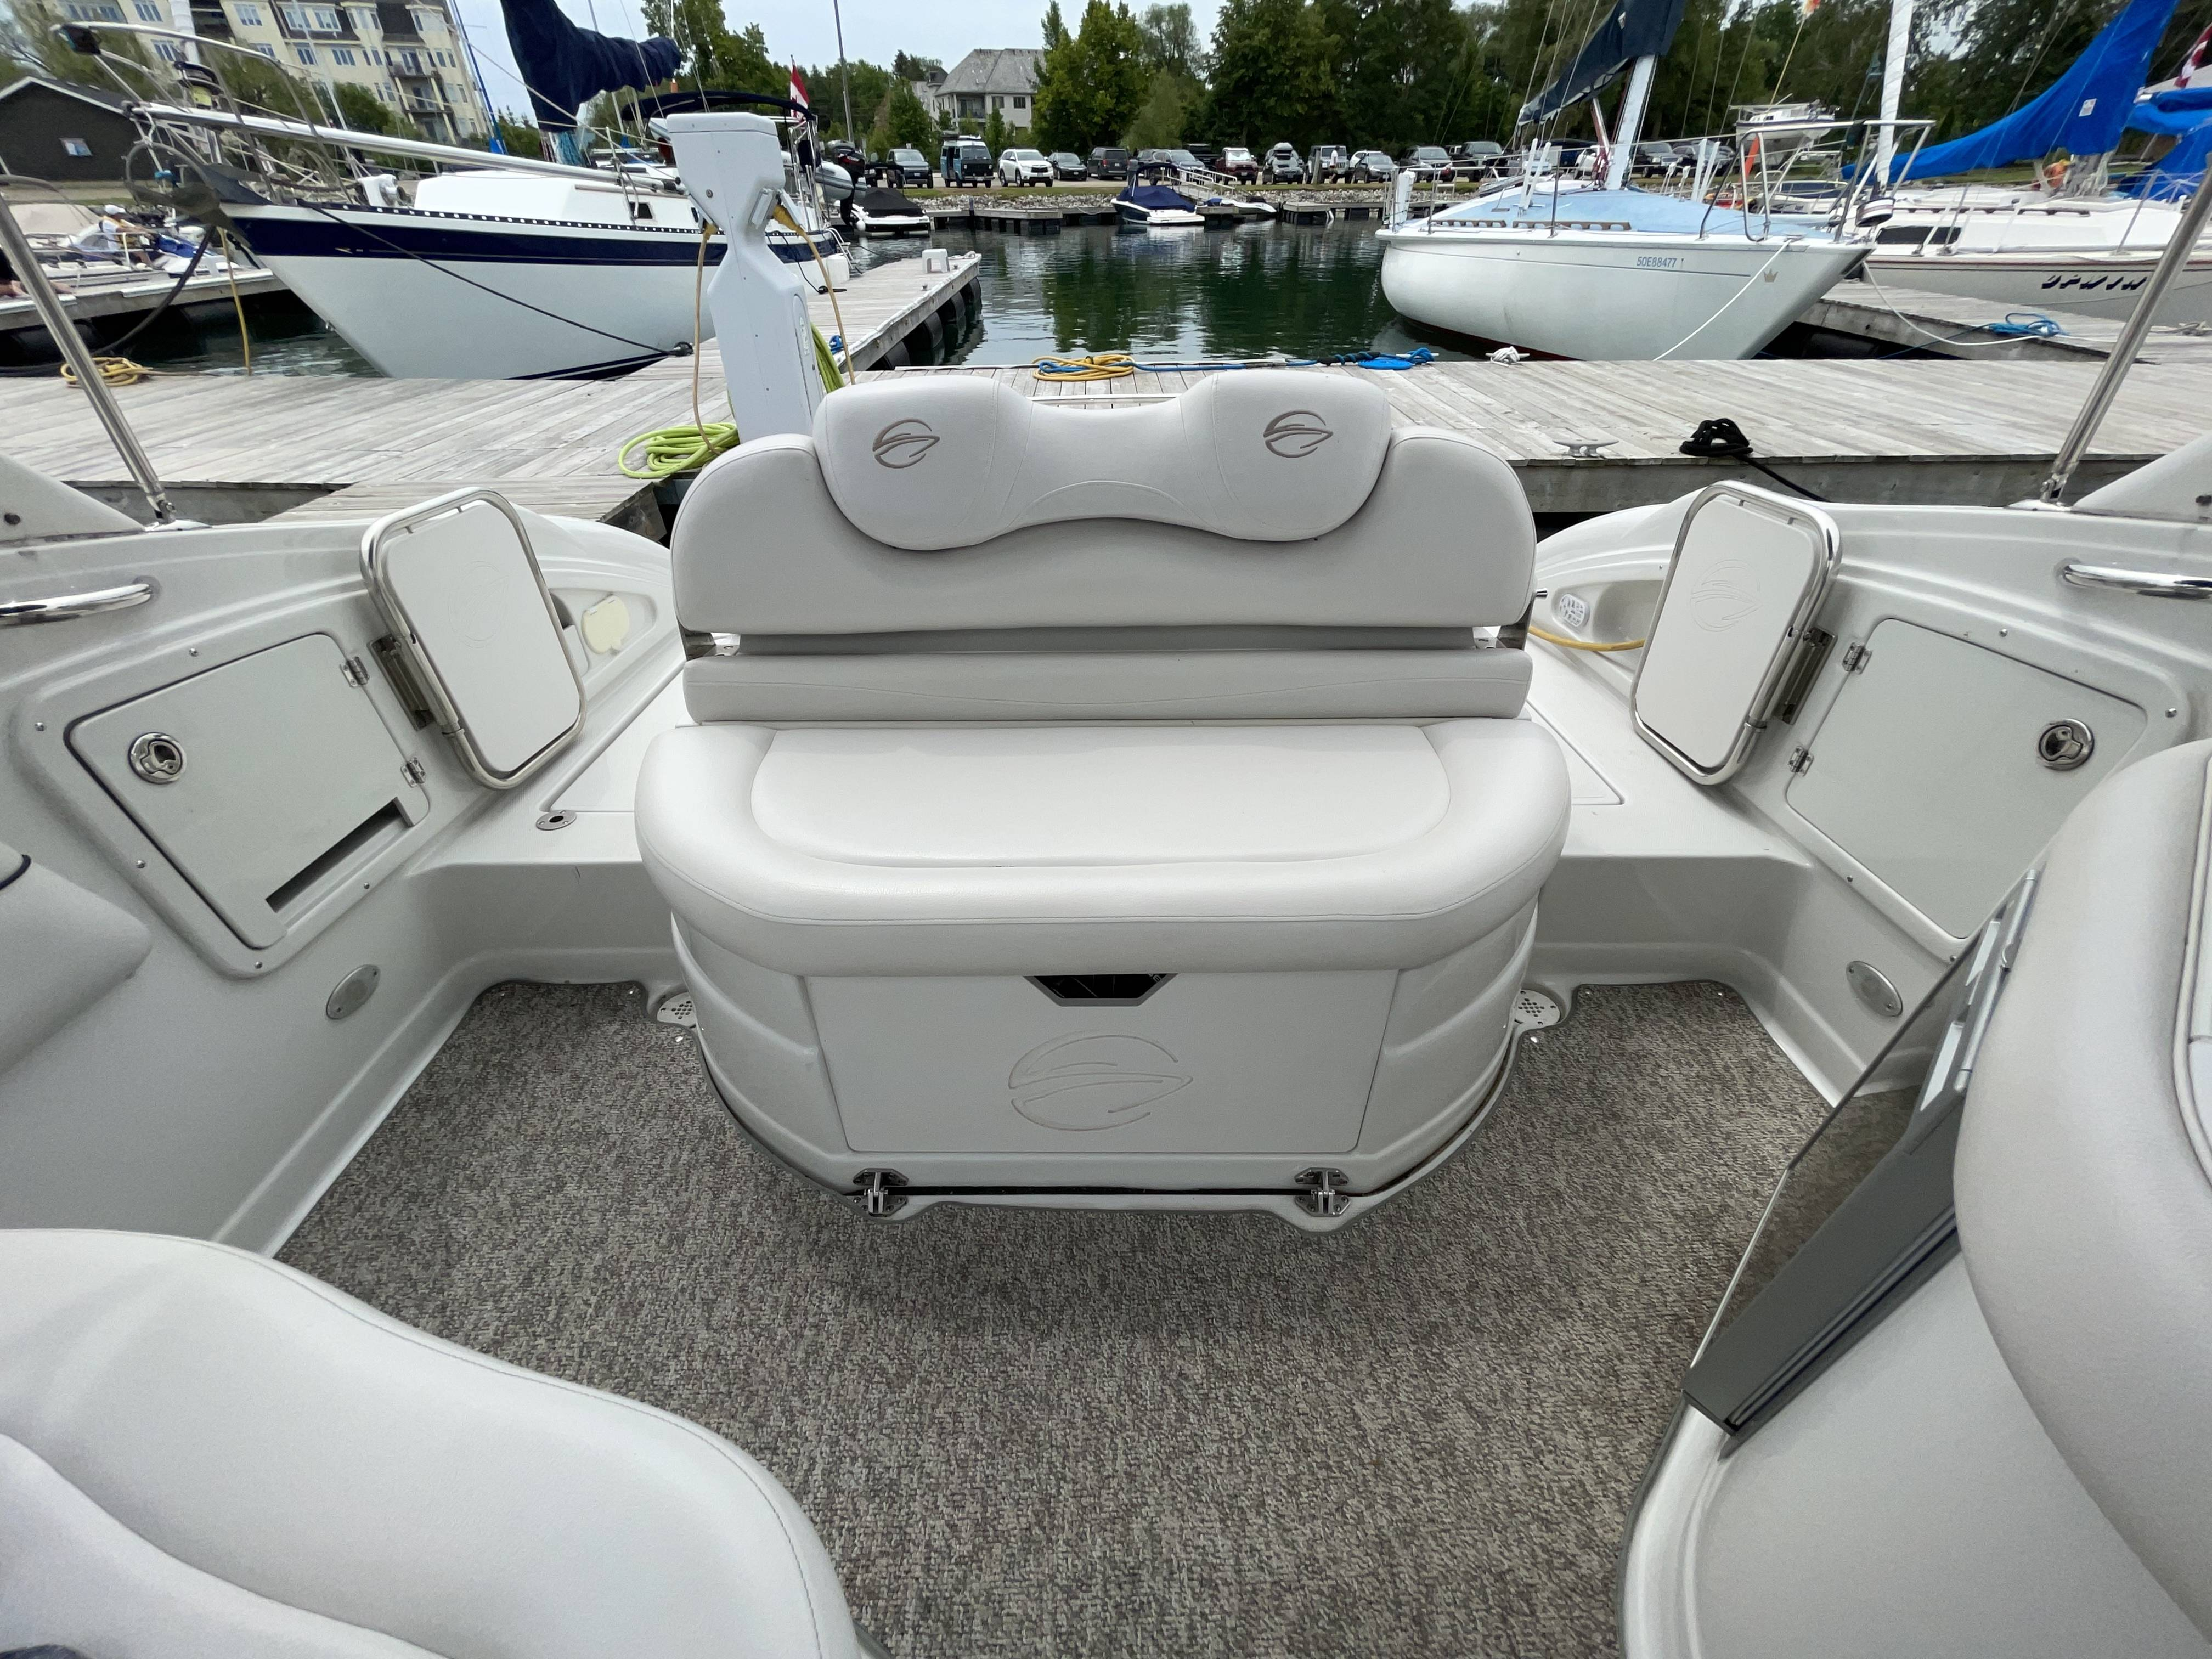 2011 Crownline boat for sale, model of the boat is 320 LS & Image # 31 of 55